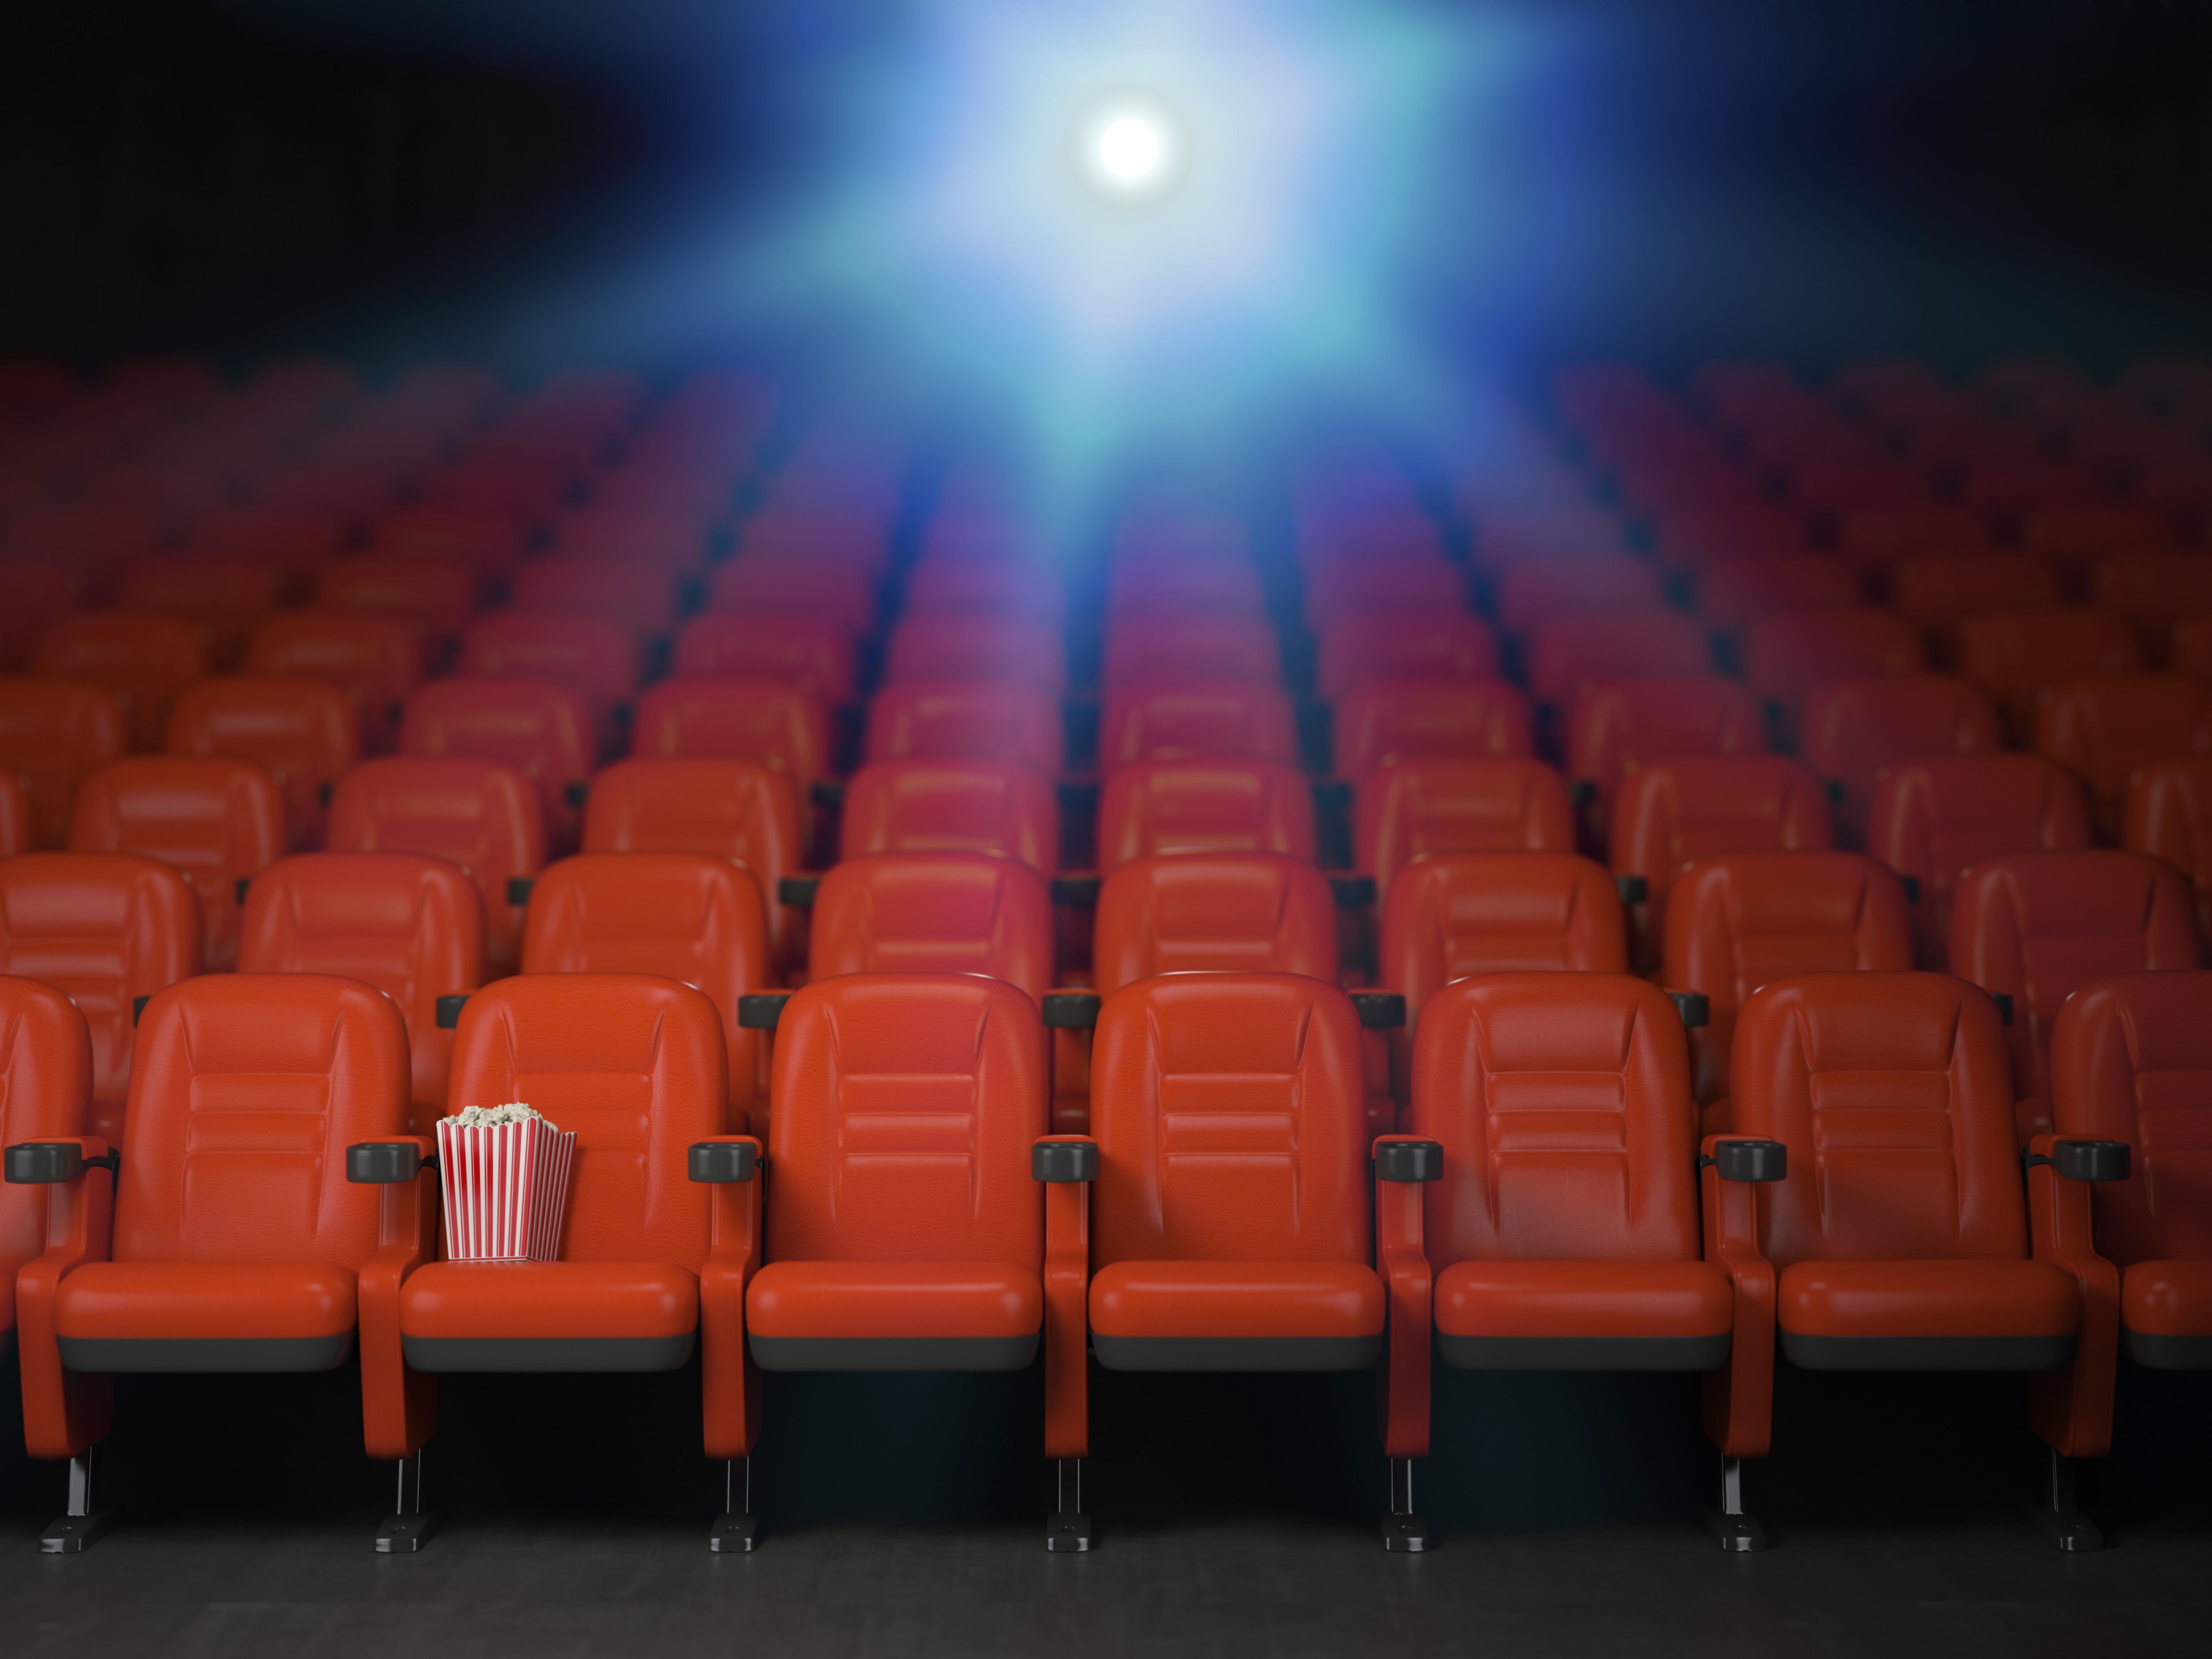 Theater seats with projector